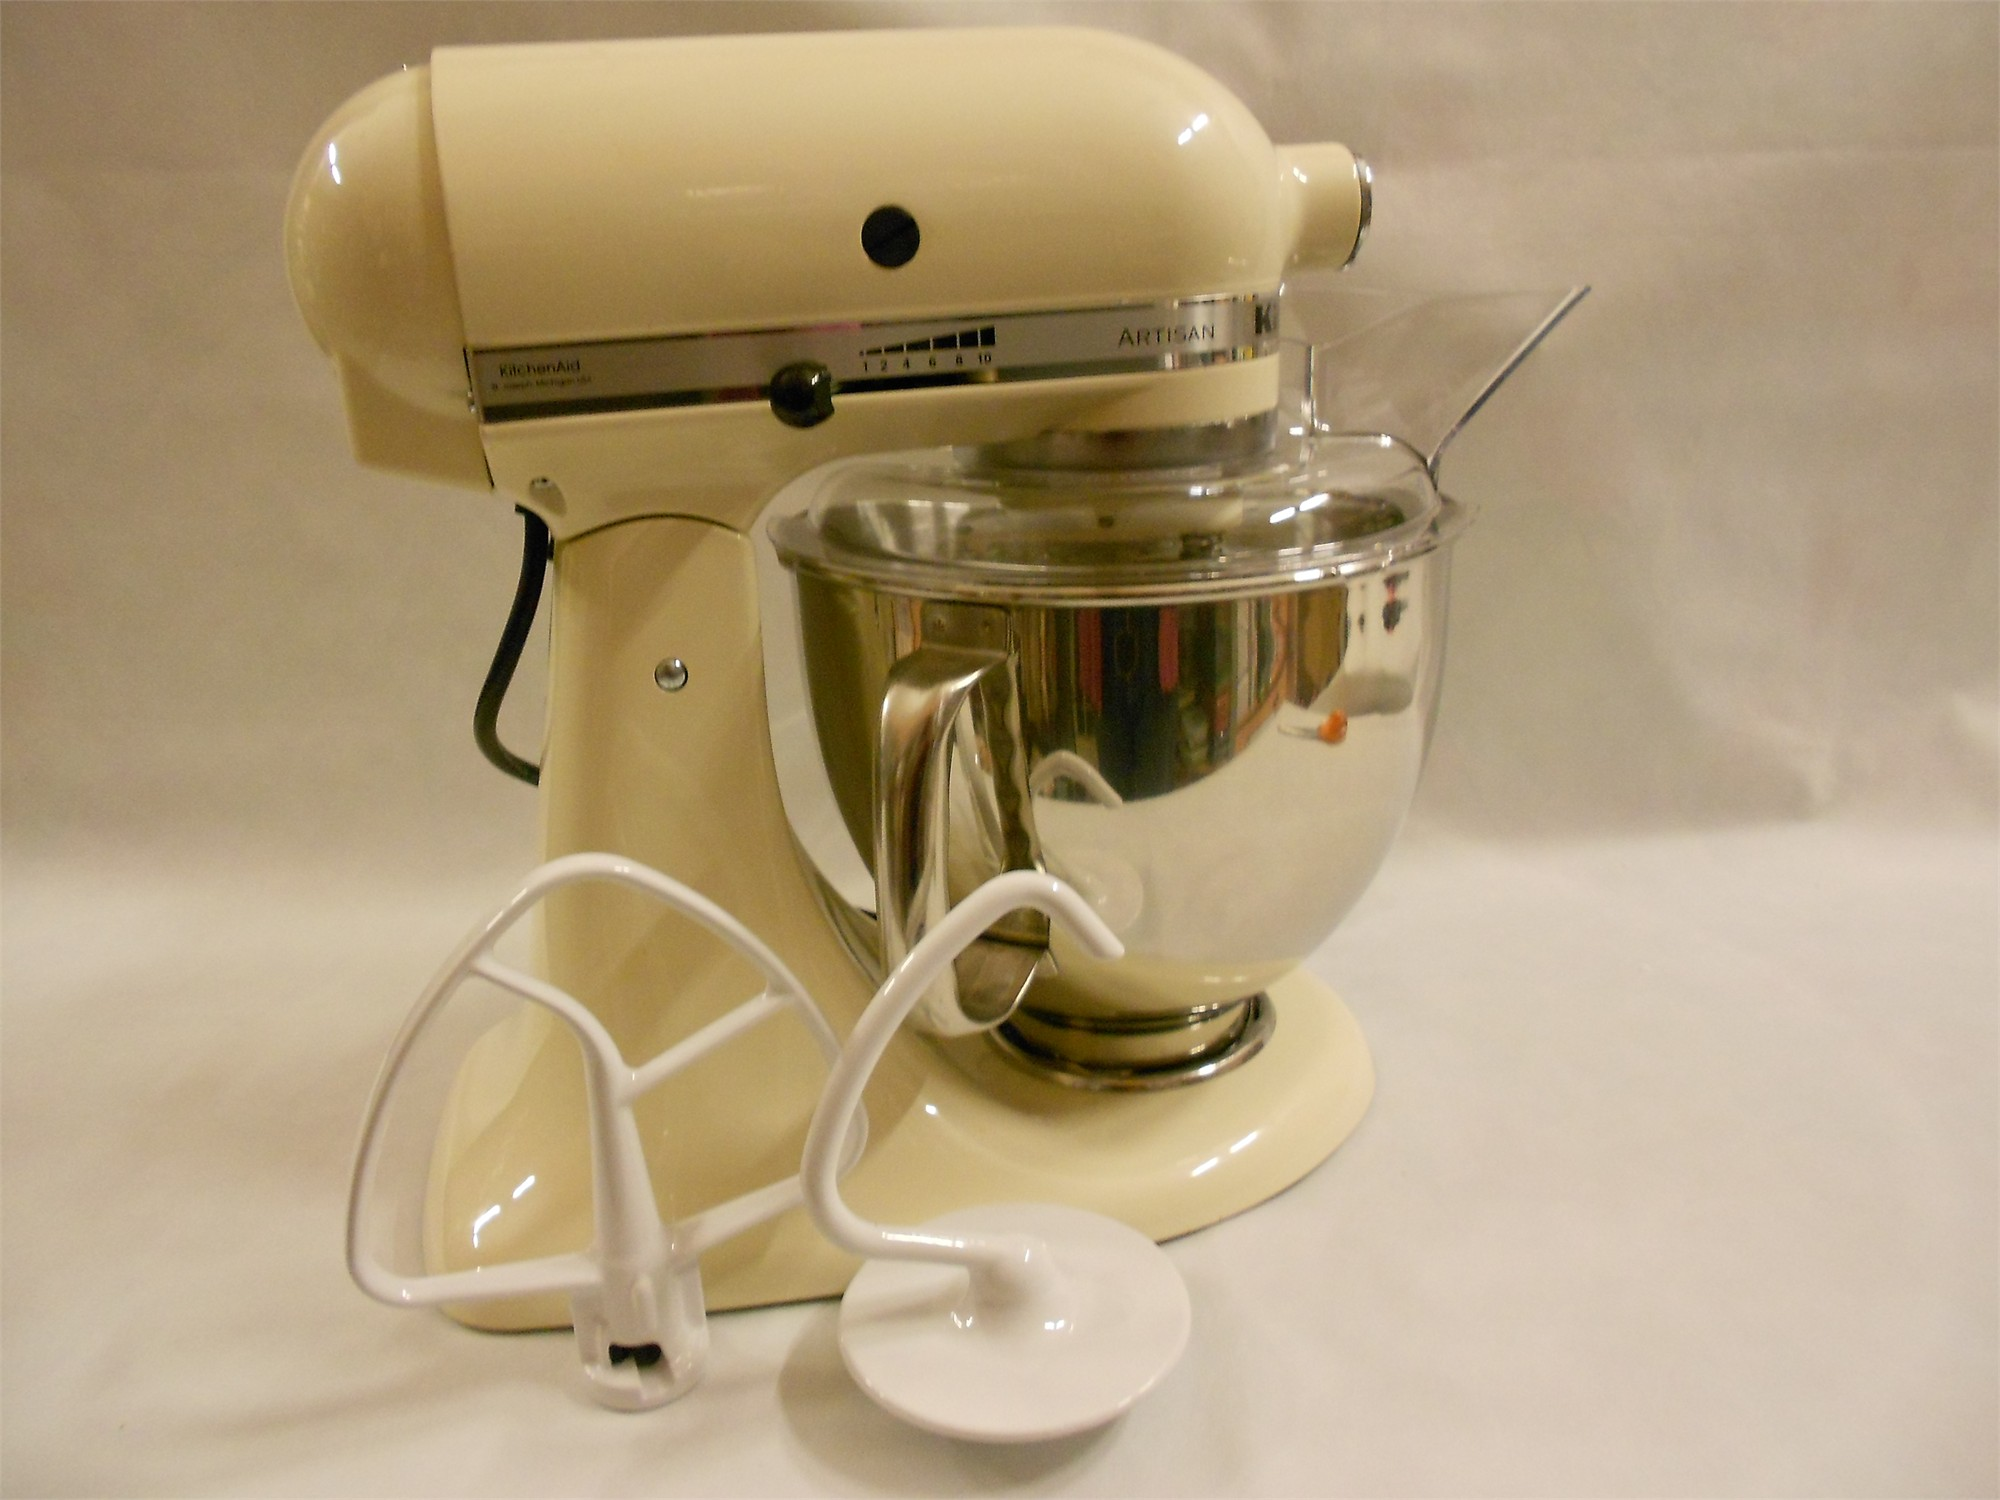 planetaria kitchenaid crema kitchenaid piccoli